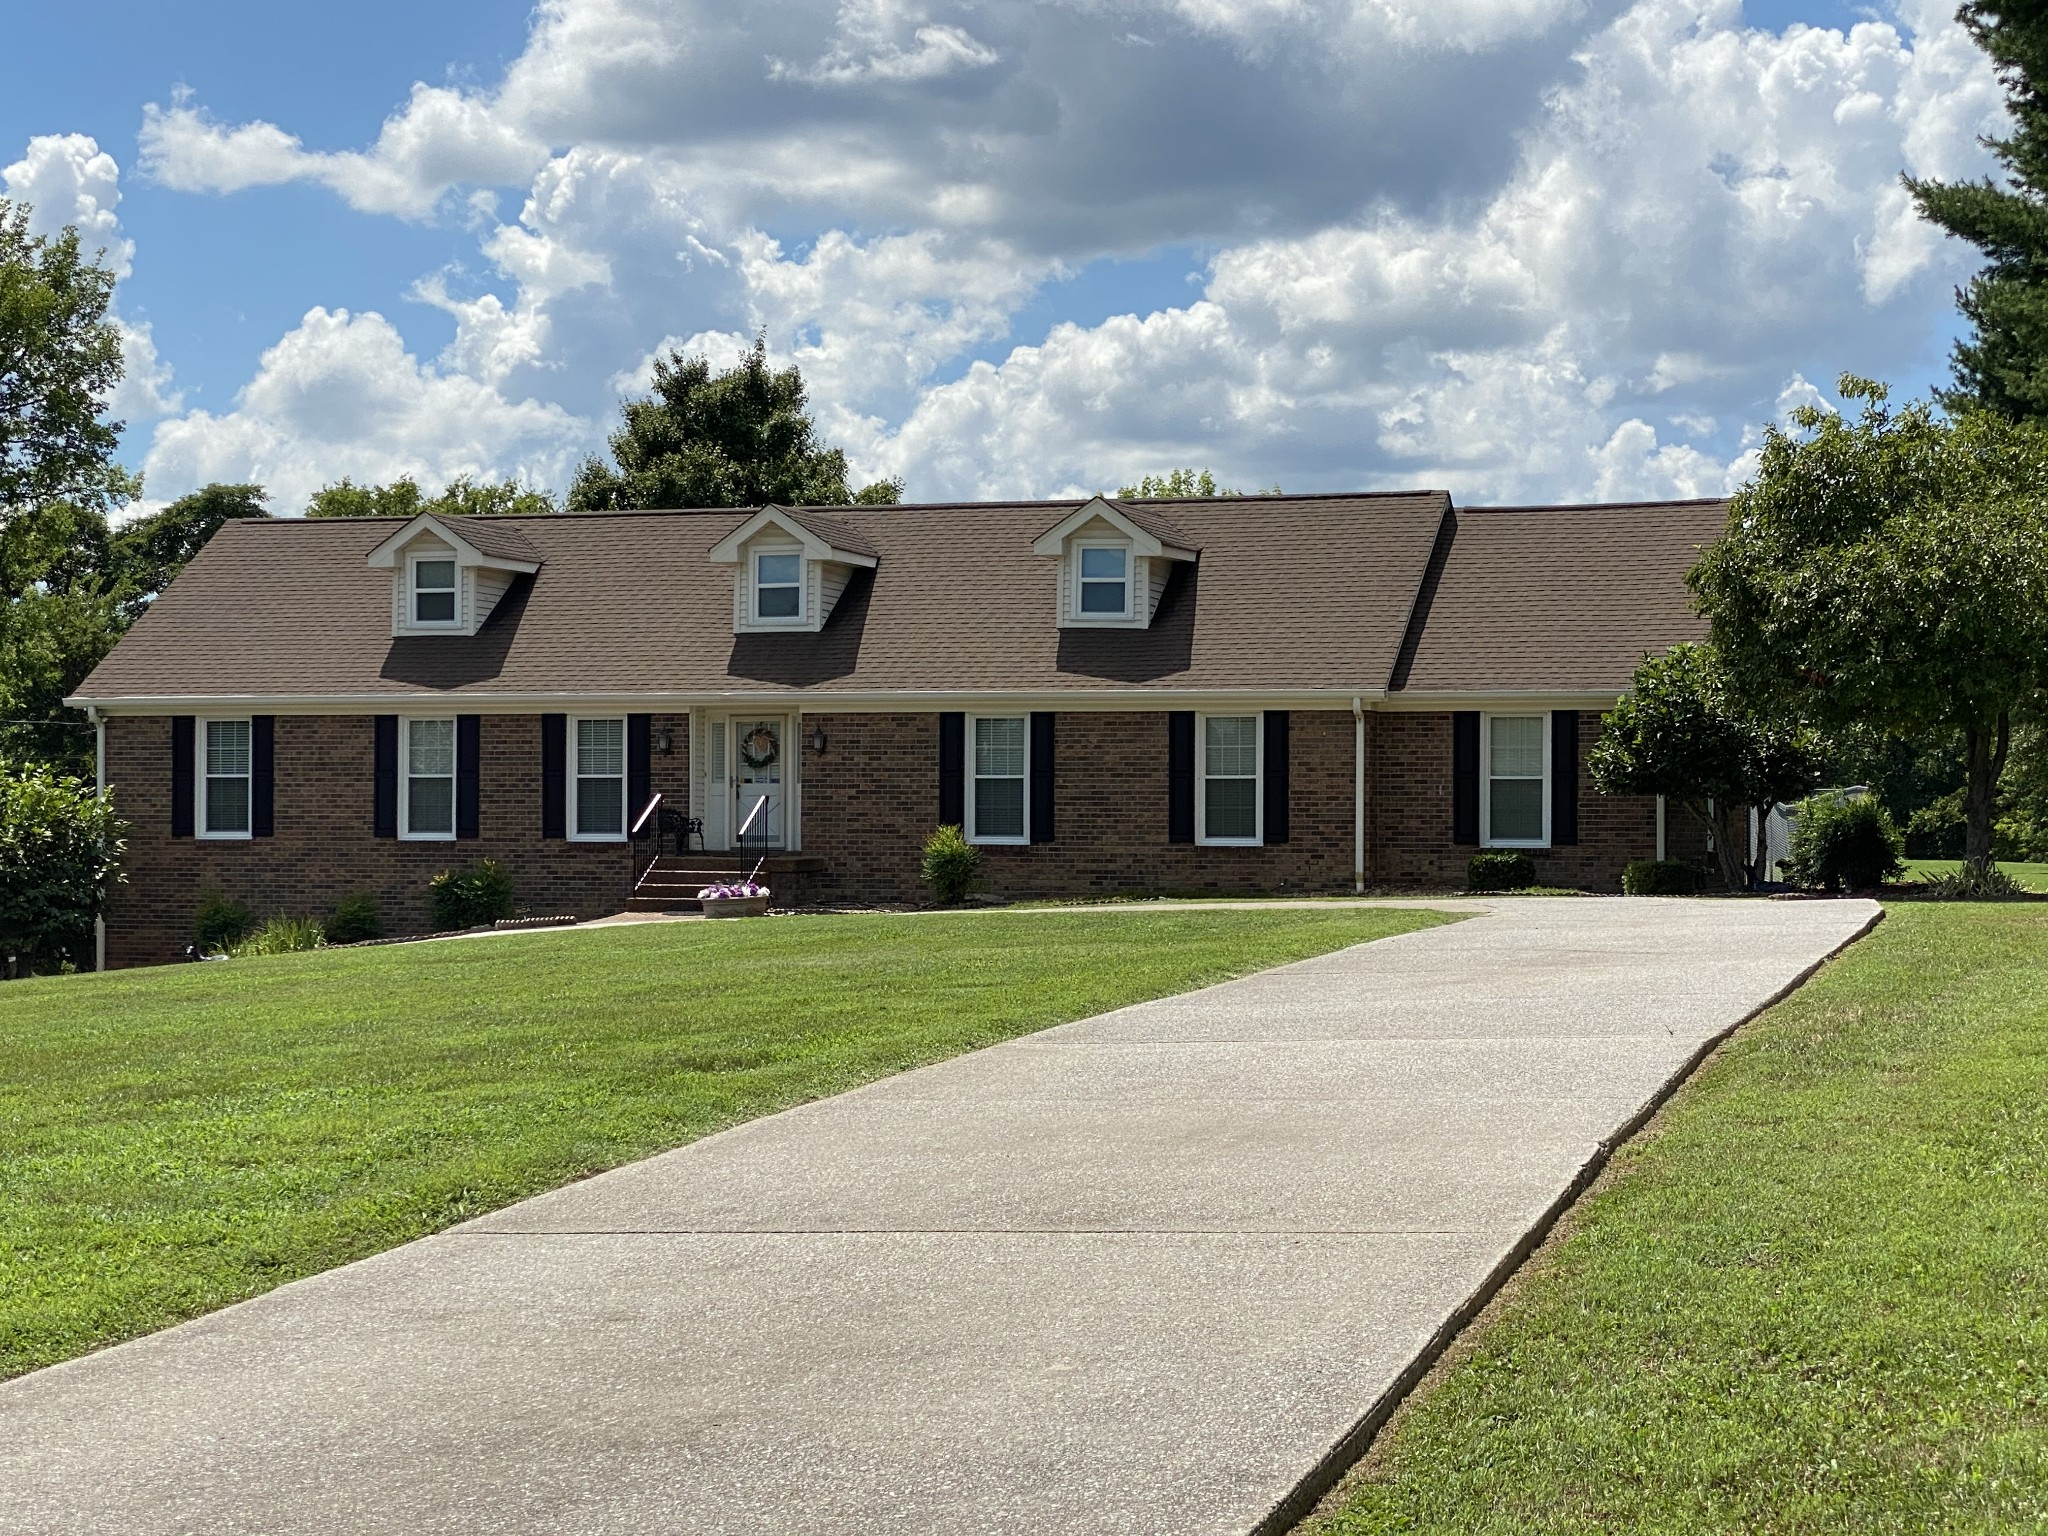 Here's a once in a lifetime chance!!  2600 SQFT home sitting on 3.95 acres close to the heart of Hendersonville.  Beautiful and scenic. 4 bd/2 full bath, full unfinished basement with garage.  1 owner home.  2 wood burning fire places. Partially fenced in back yard.  Deck.  Sun room. Custom closets in the master bedroom.  Spacious, open and yet very comfortable. Meticulously cared for.  City ordinances allows horses on this lot with some restrictions.. Close access to Stark Knob boat ramp